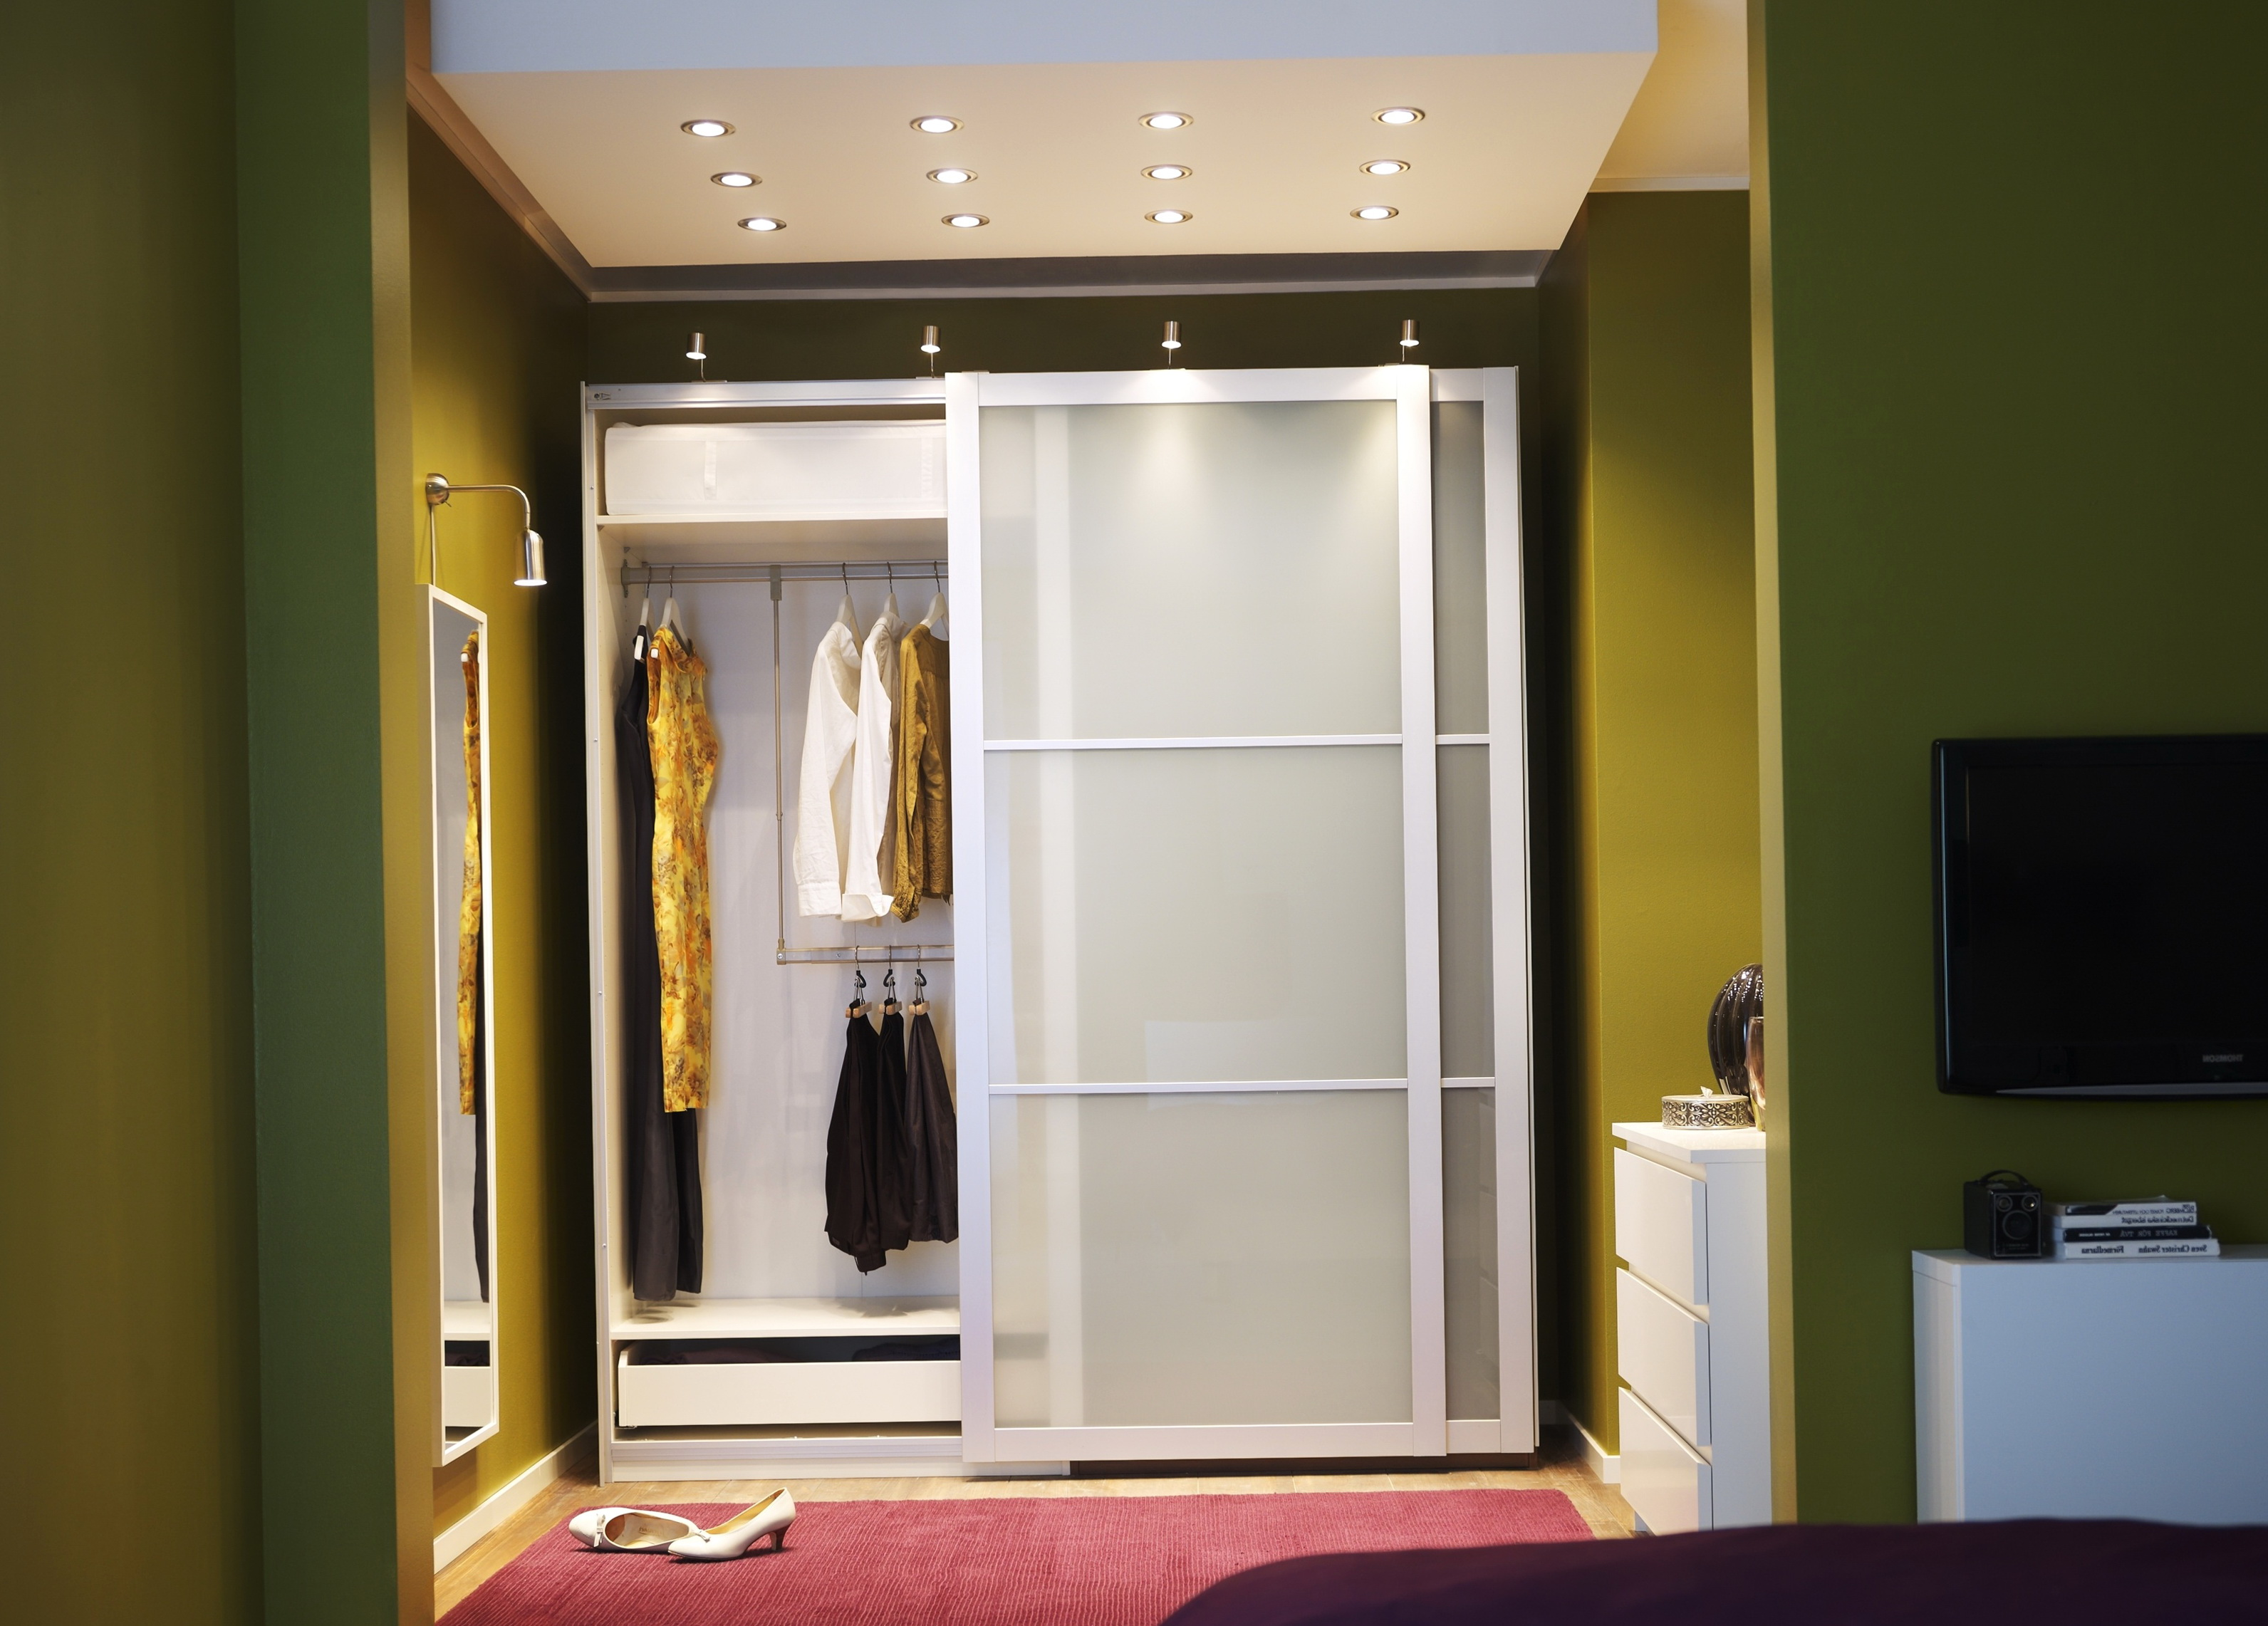 ikea see pax door you target closet armoire that sliding awful must closets planner wardrobe